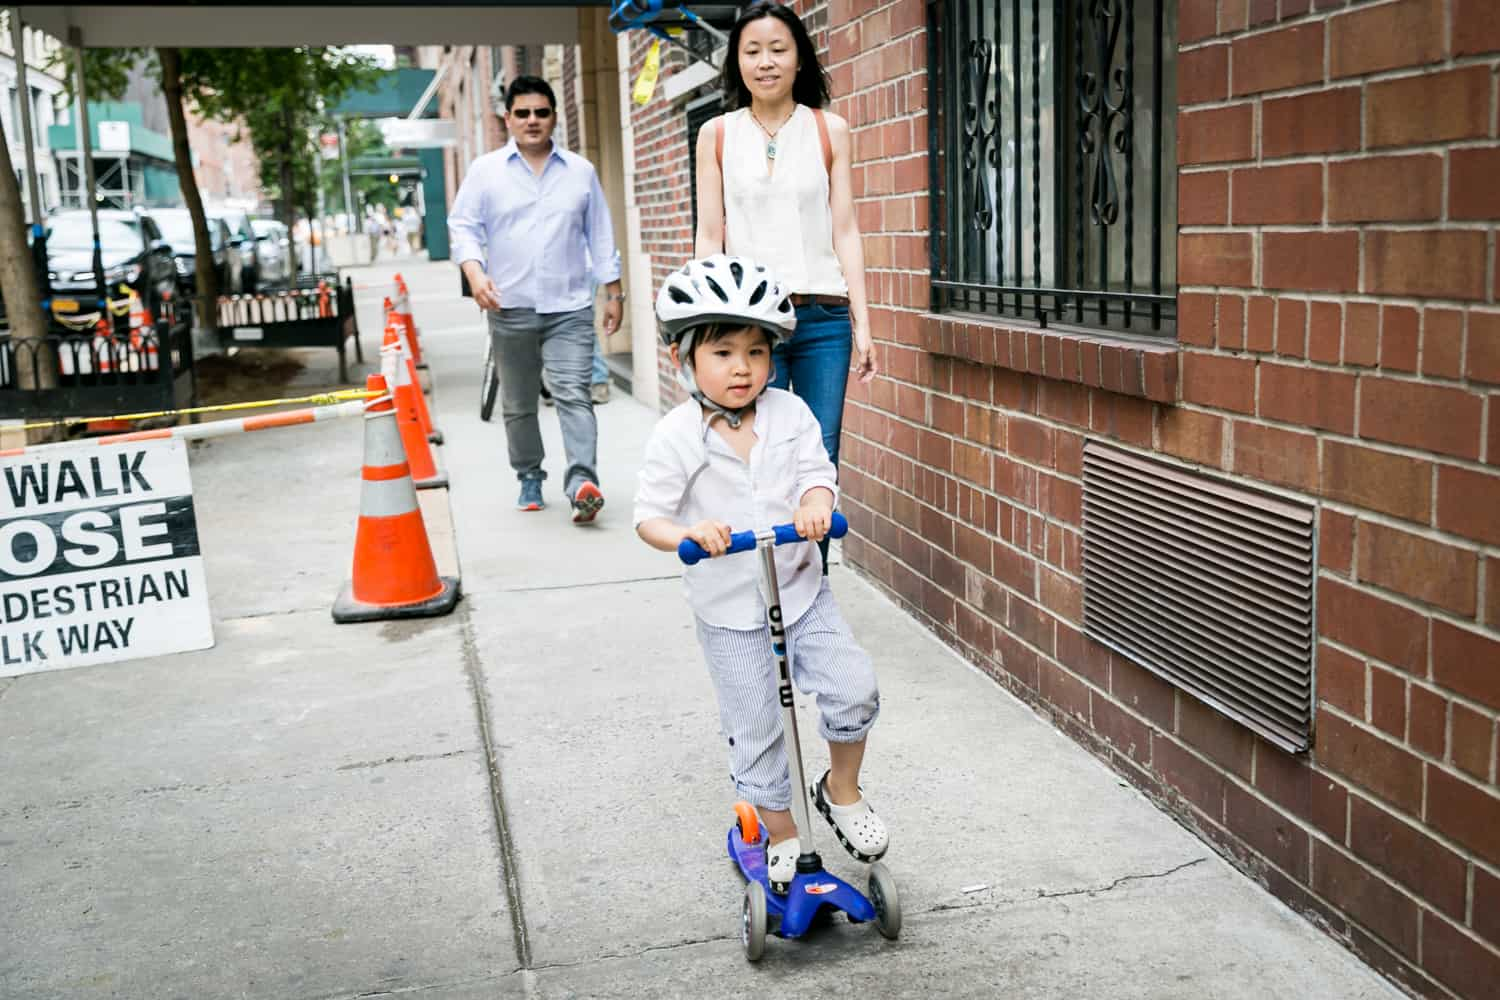 Parents and little boy on scooter on Manhattan sidewalk